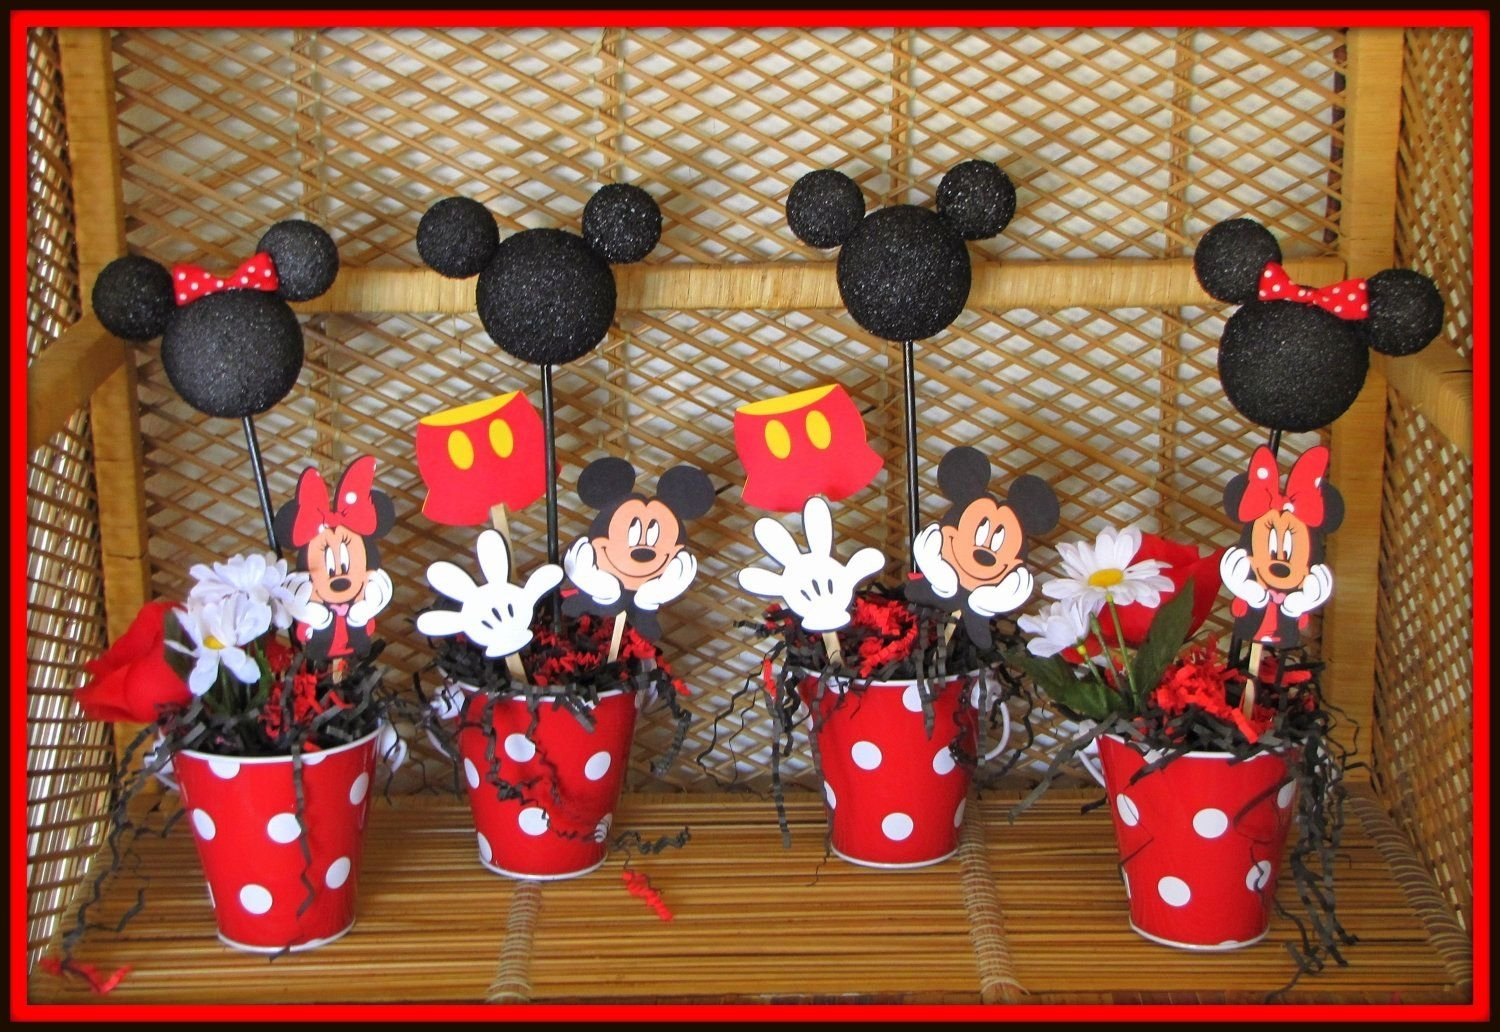 10 Lovely Mickey Mouse Party Ideas Pinterest minnie and mickey party decorations photos mickey mouse birthday 2020